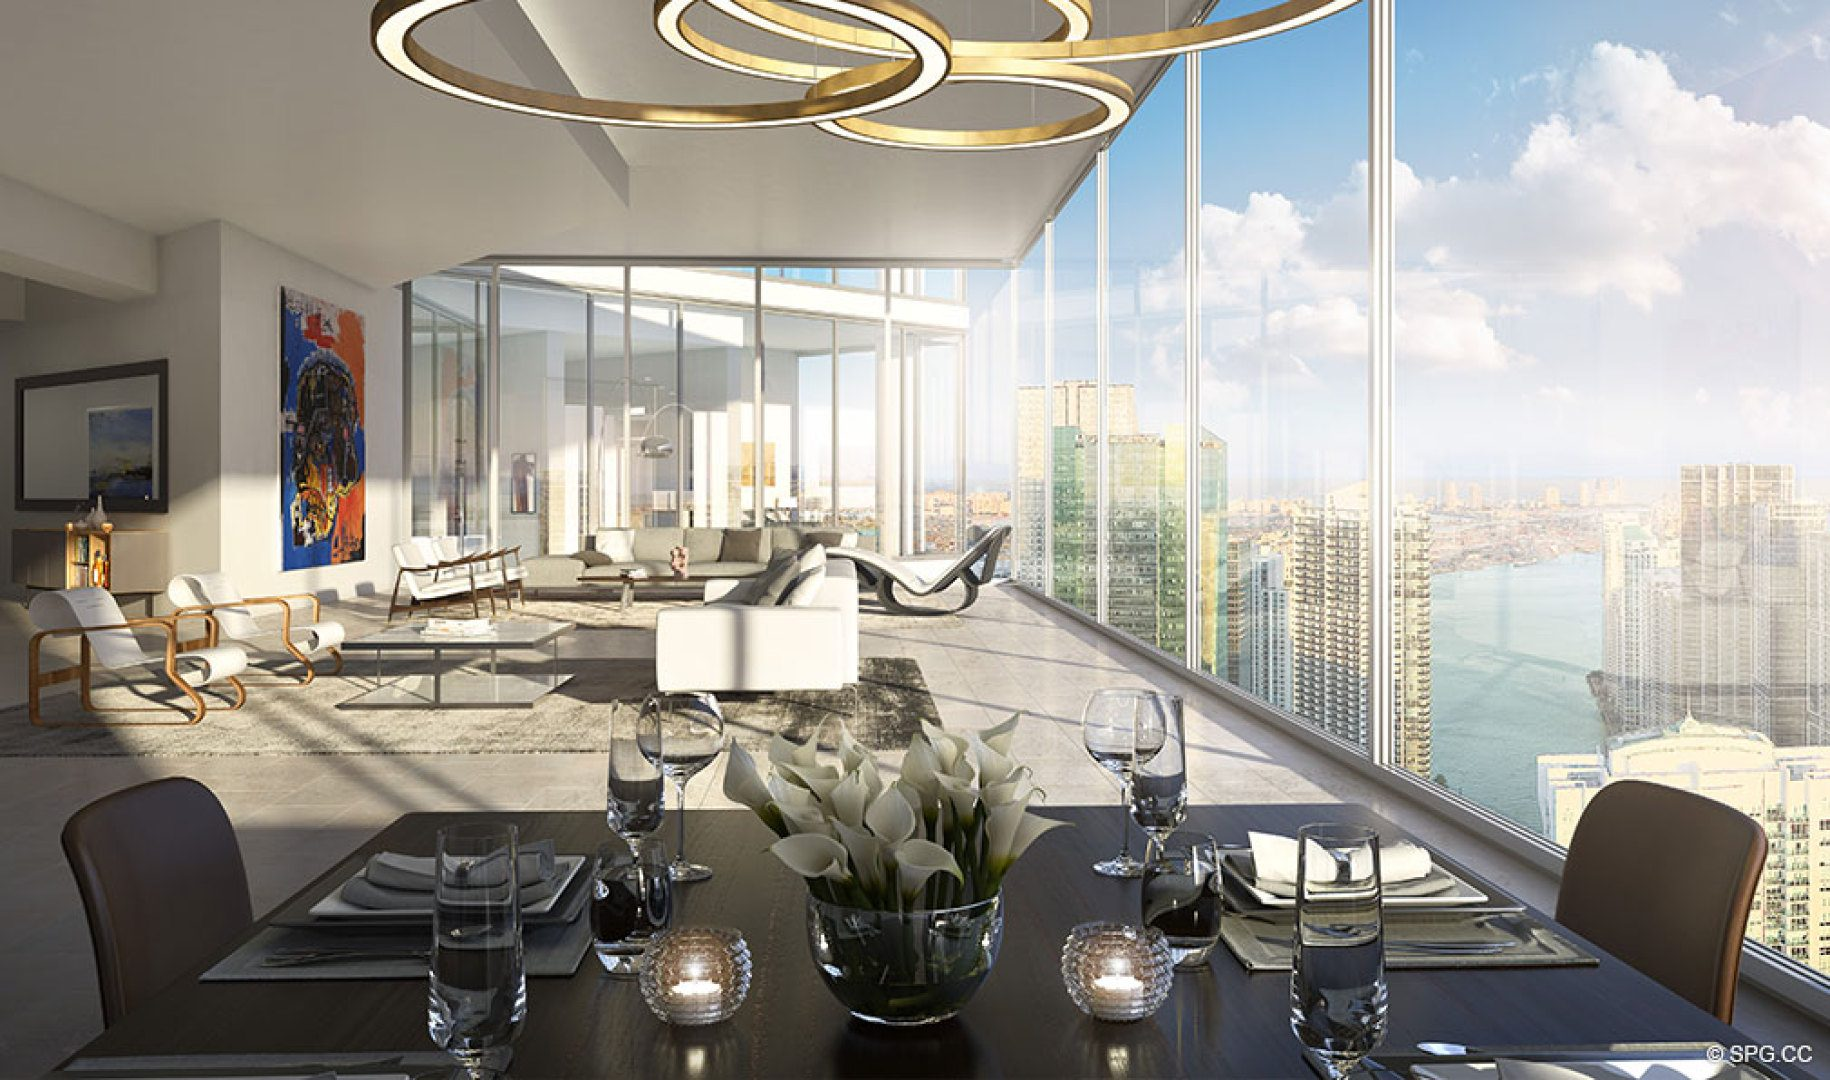 Residence Design at One River Point, Luxury Waterfront Condos in Miami, Florida 33130